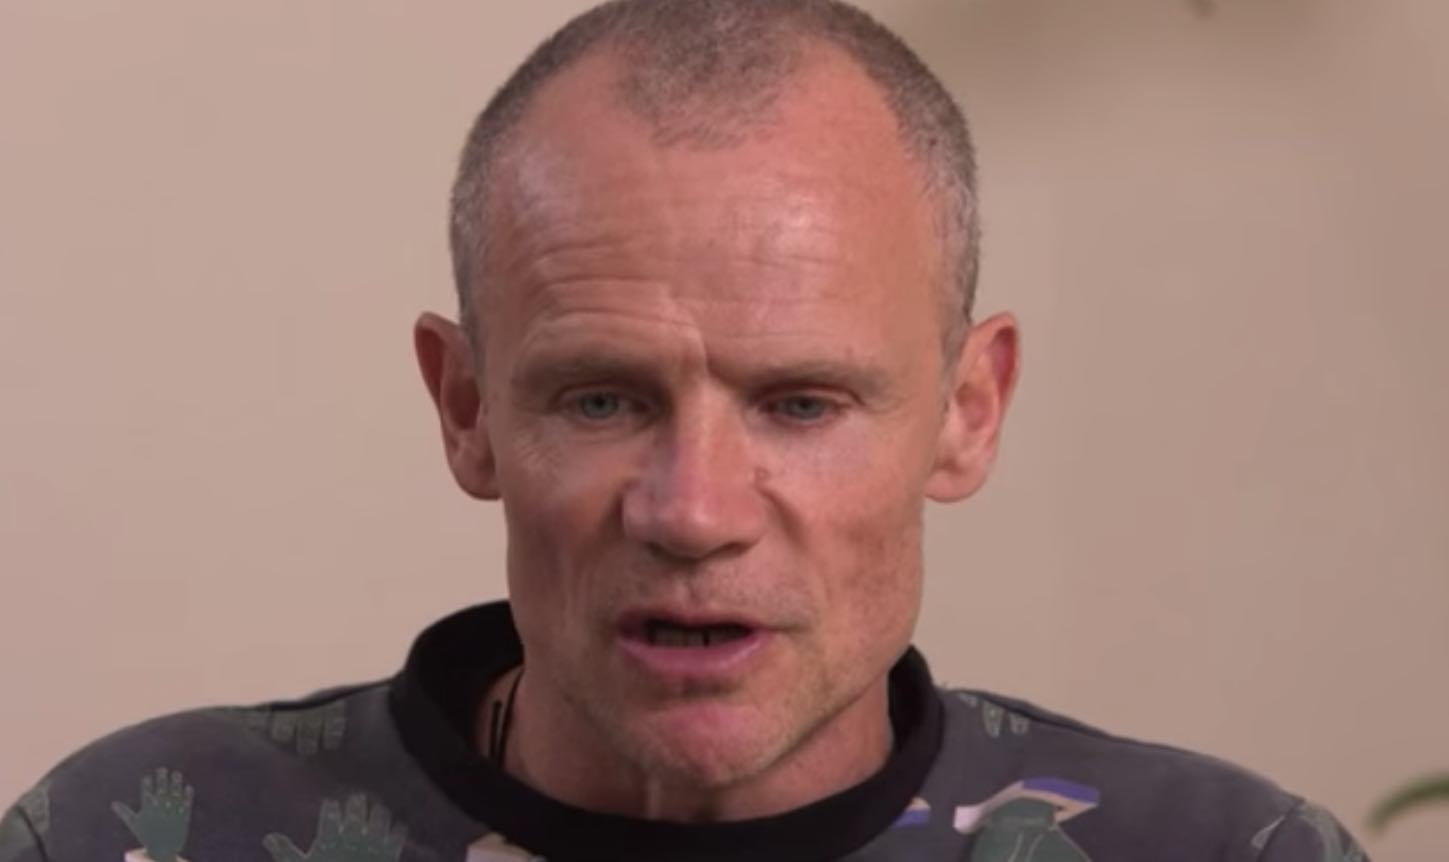 fb1304be5f1 Red Hot Chili Peppers bassist Flea reacted to Magic Johnson's stunning  departure as the Los Angeles Lakers' President of Basketball Operations on  Tuesday.